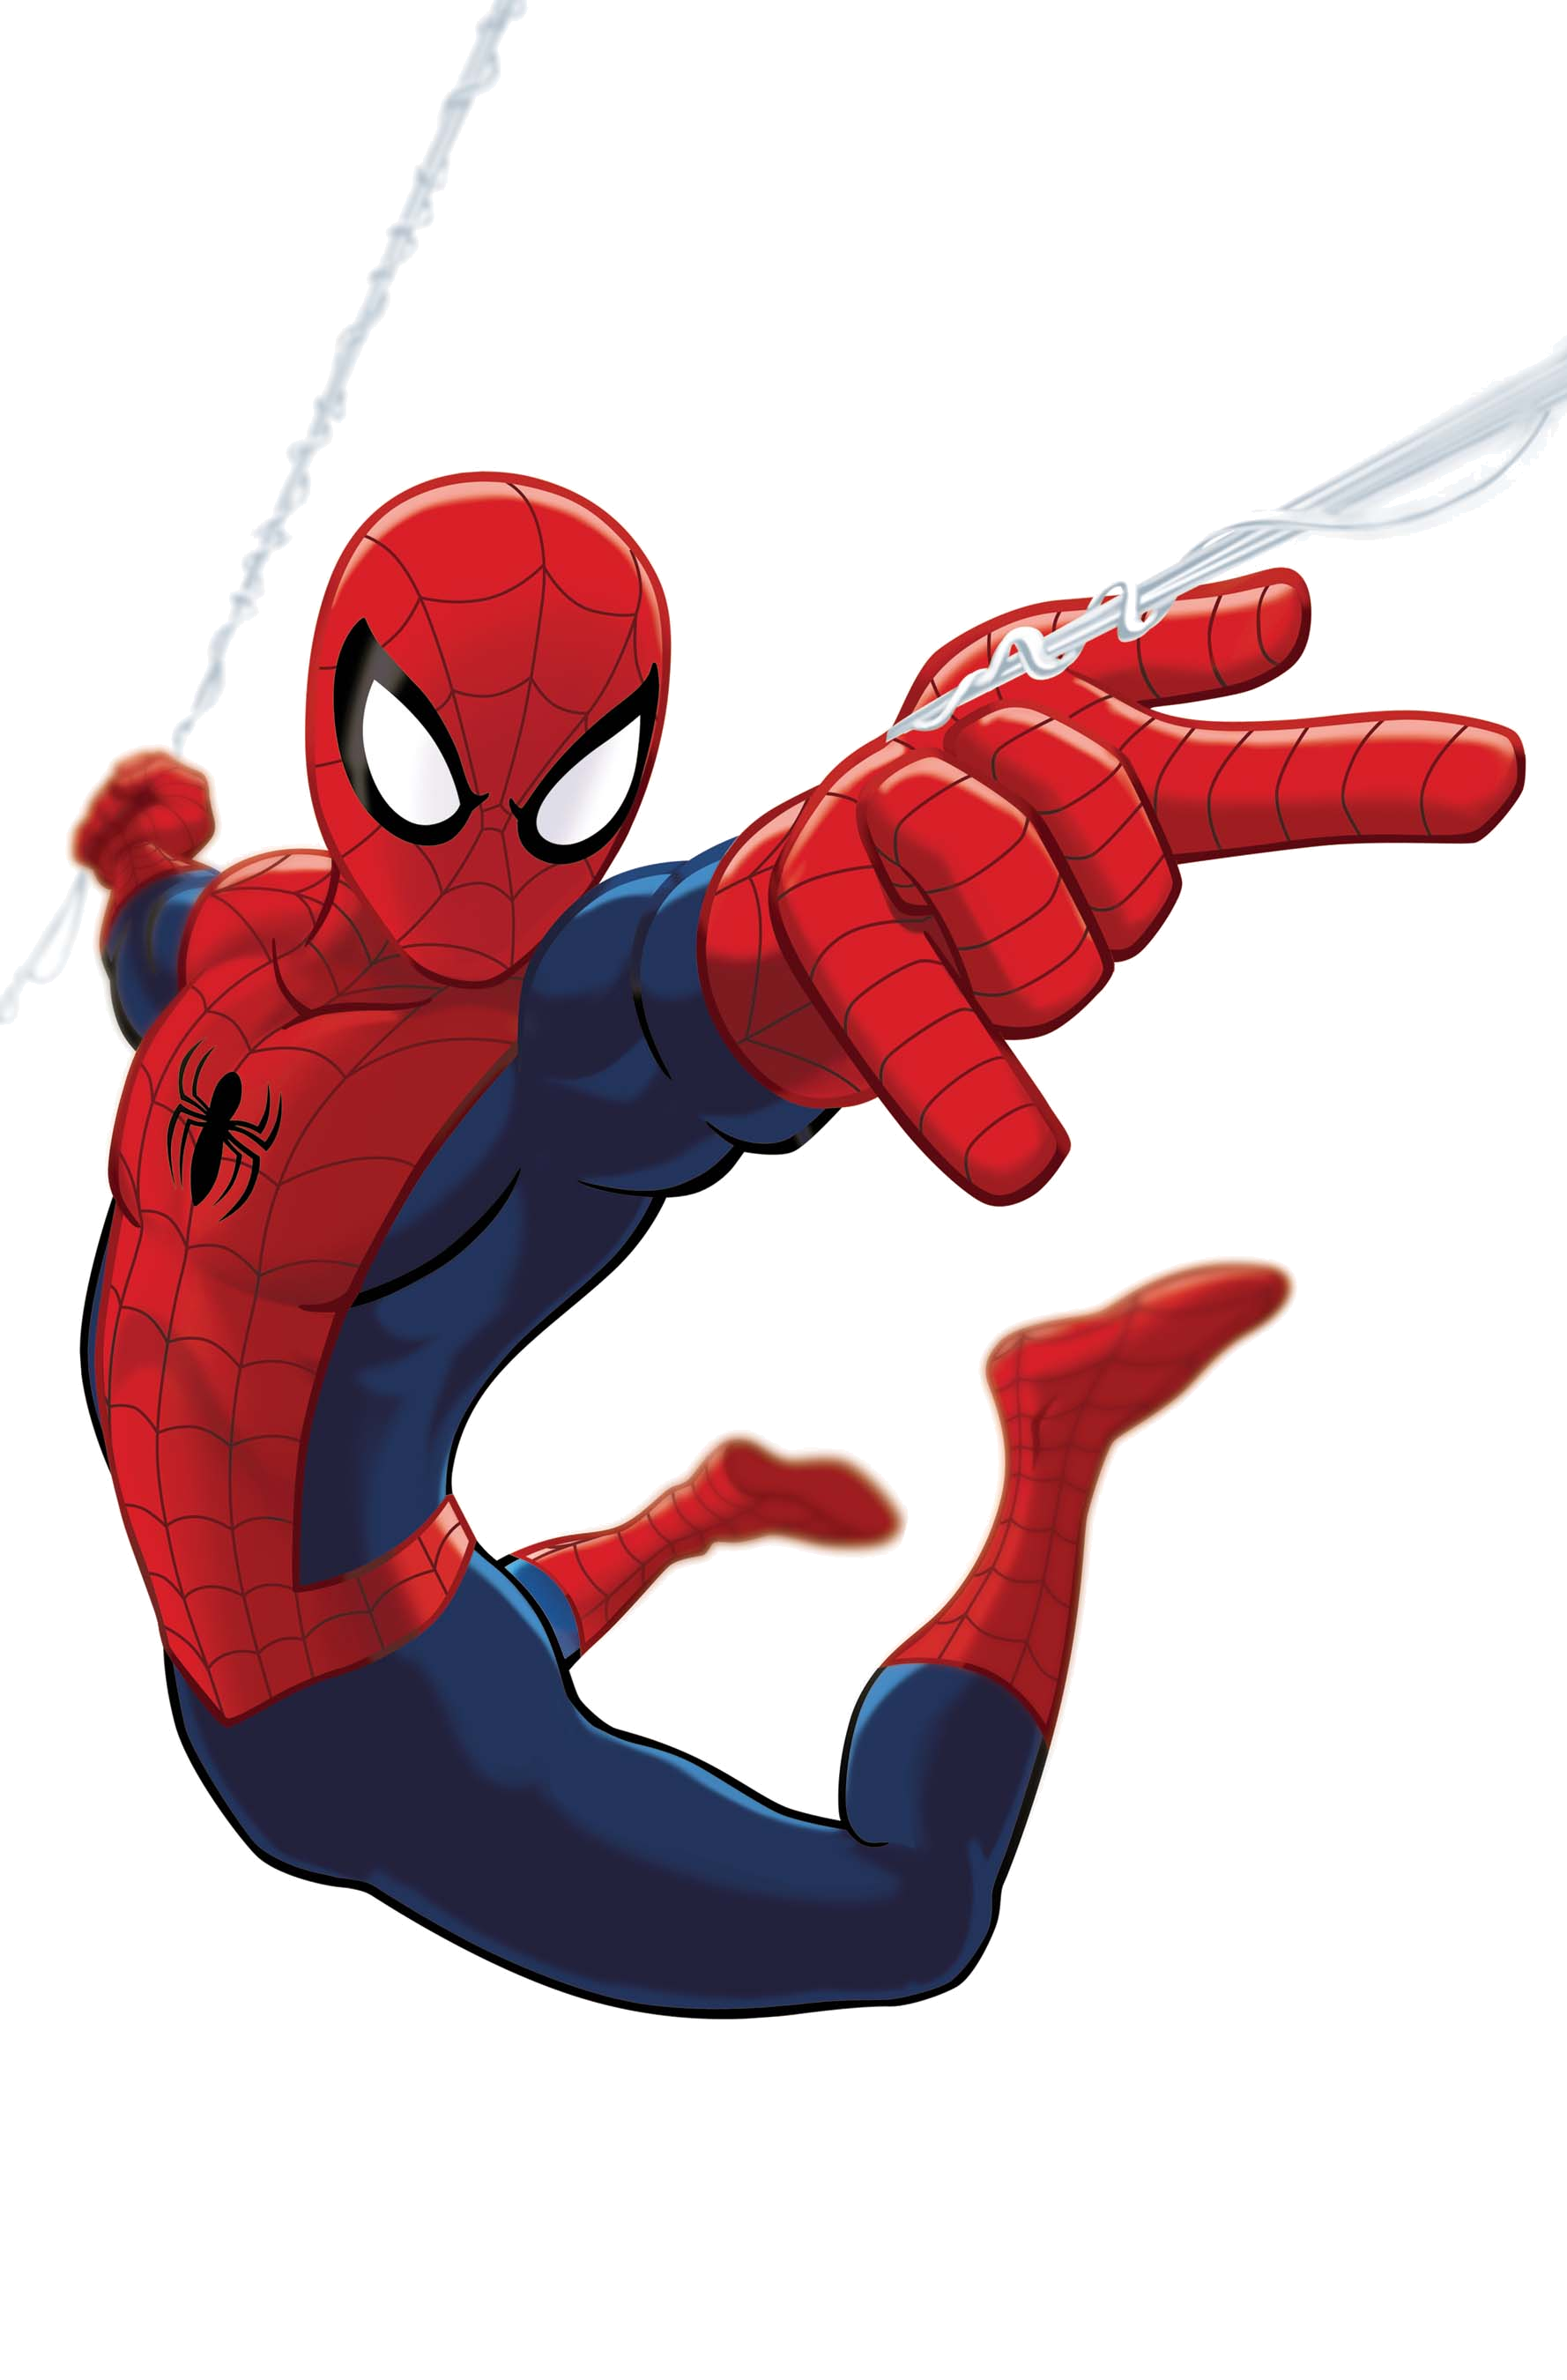 Spider Man Ultimate Spider Man Animated Series Wiki Fandom